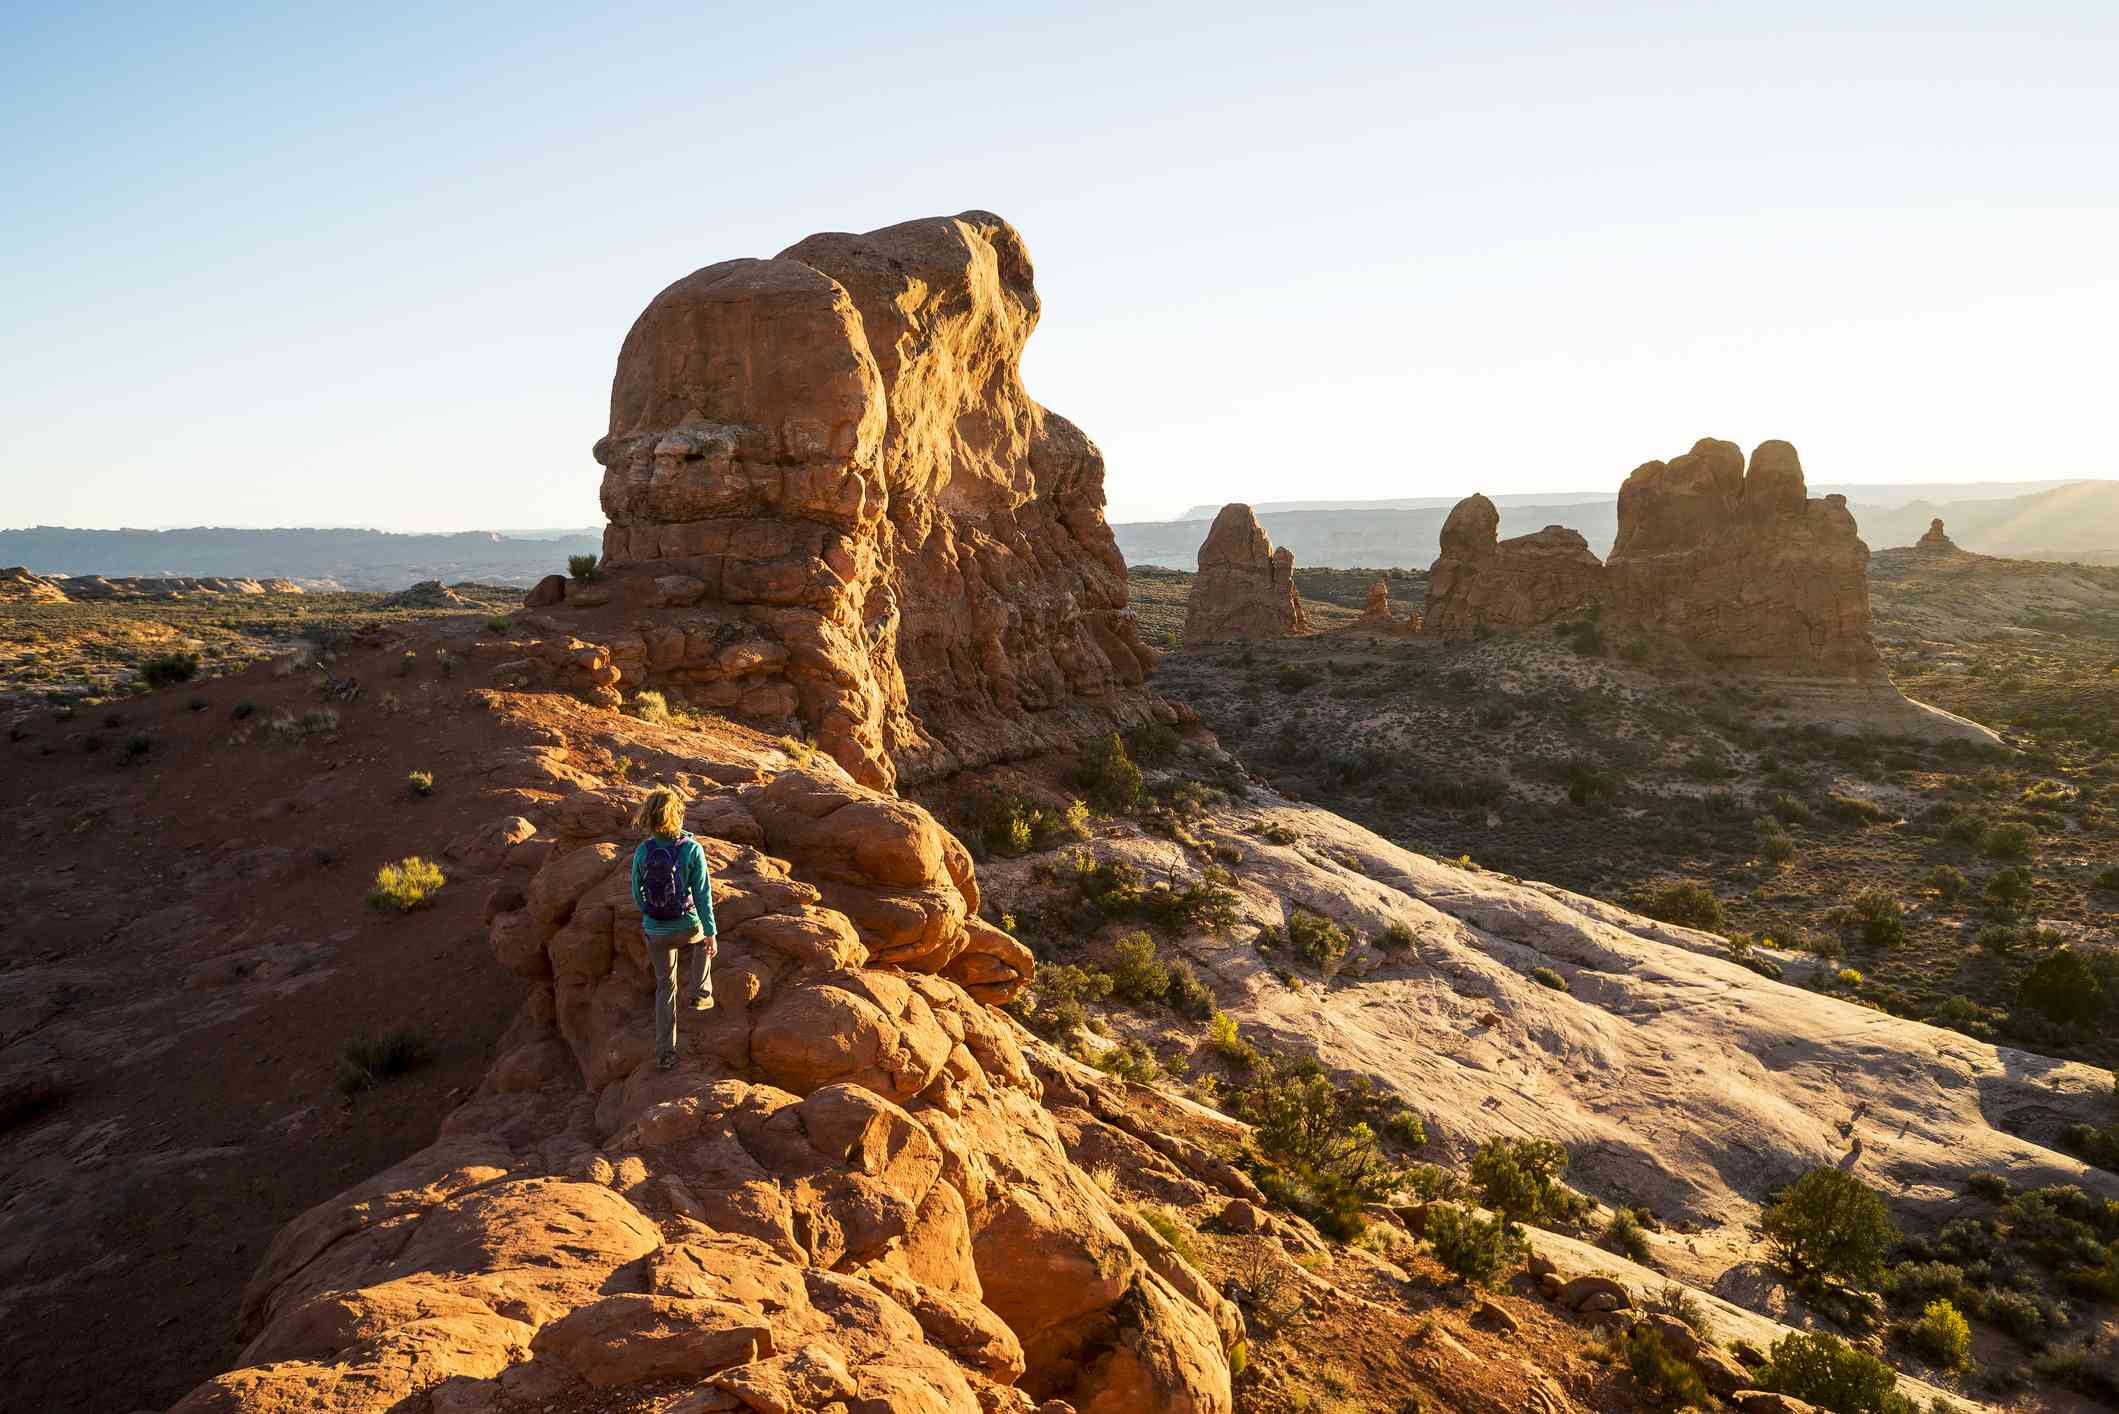 A woman hiking a scenic trail in Arches National Park.